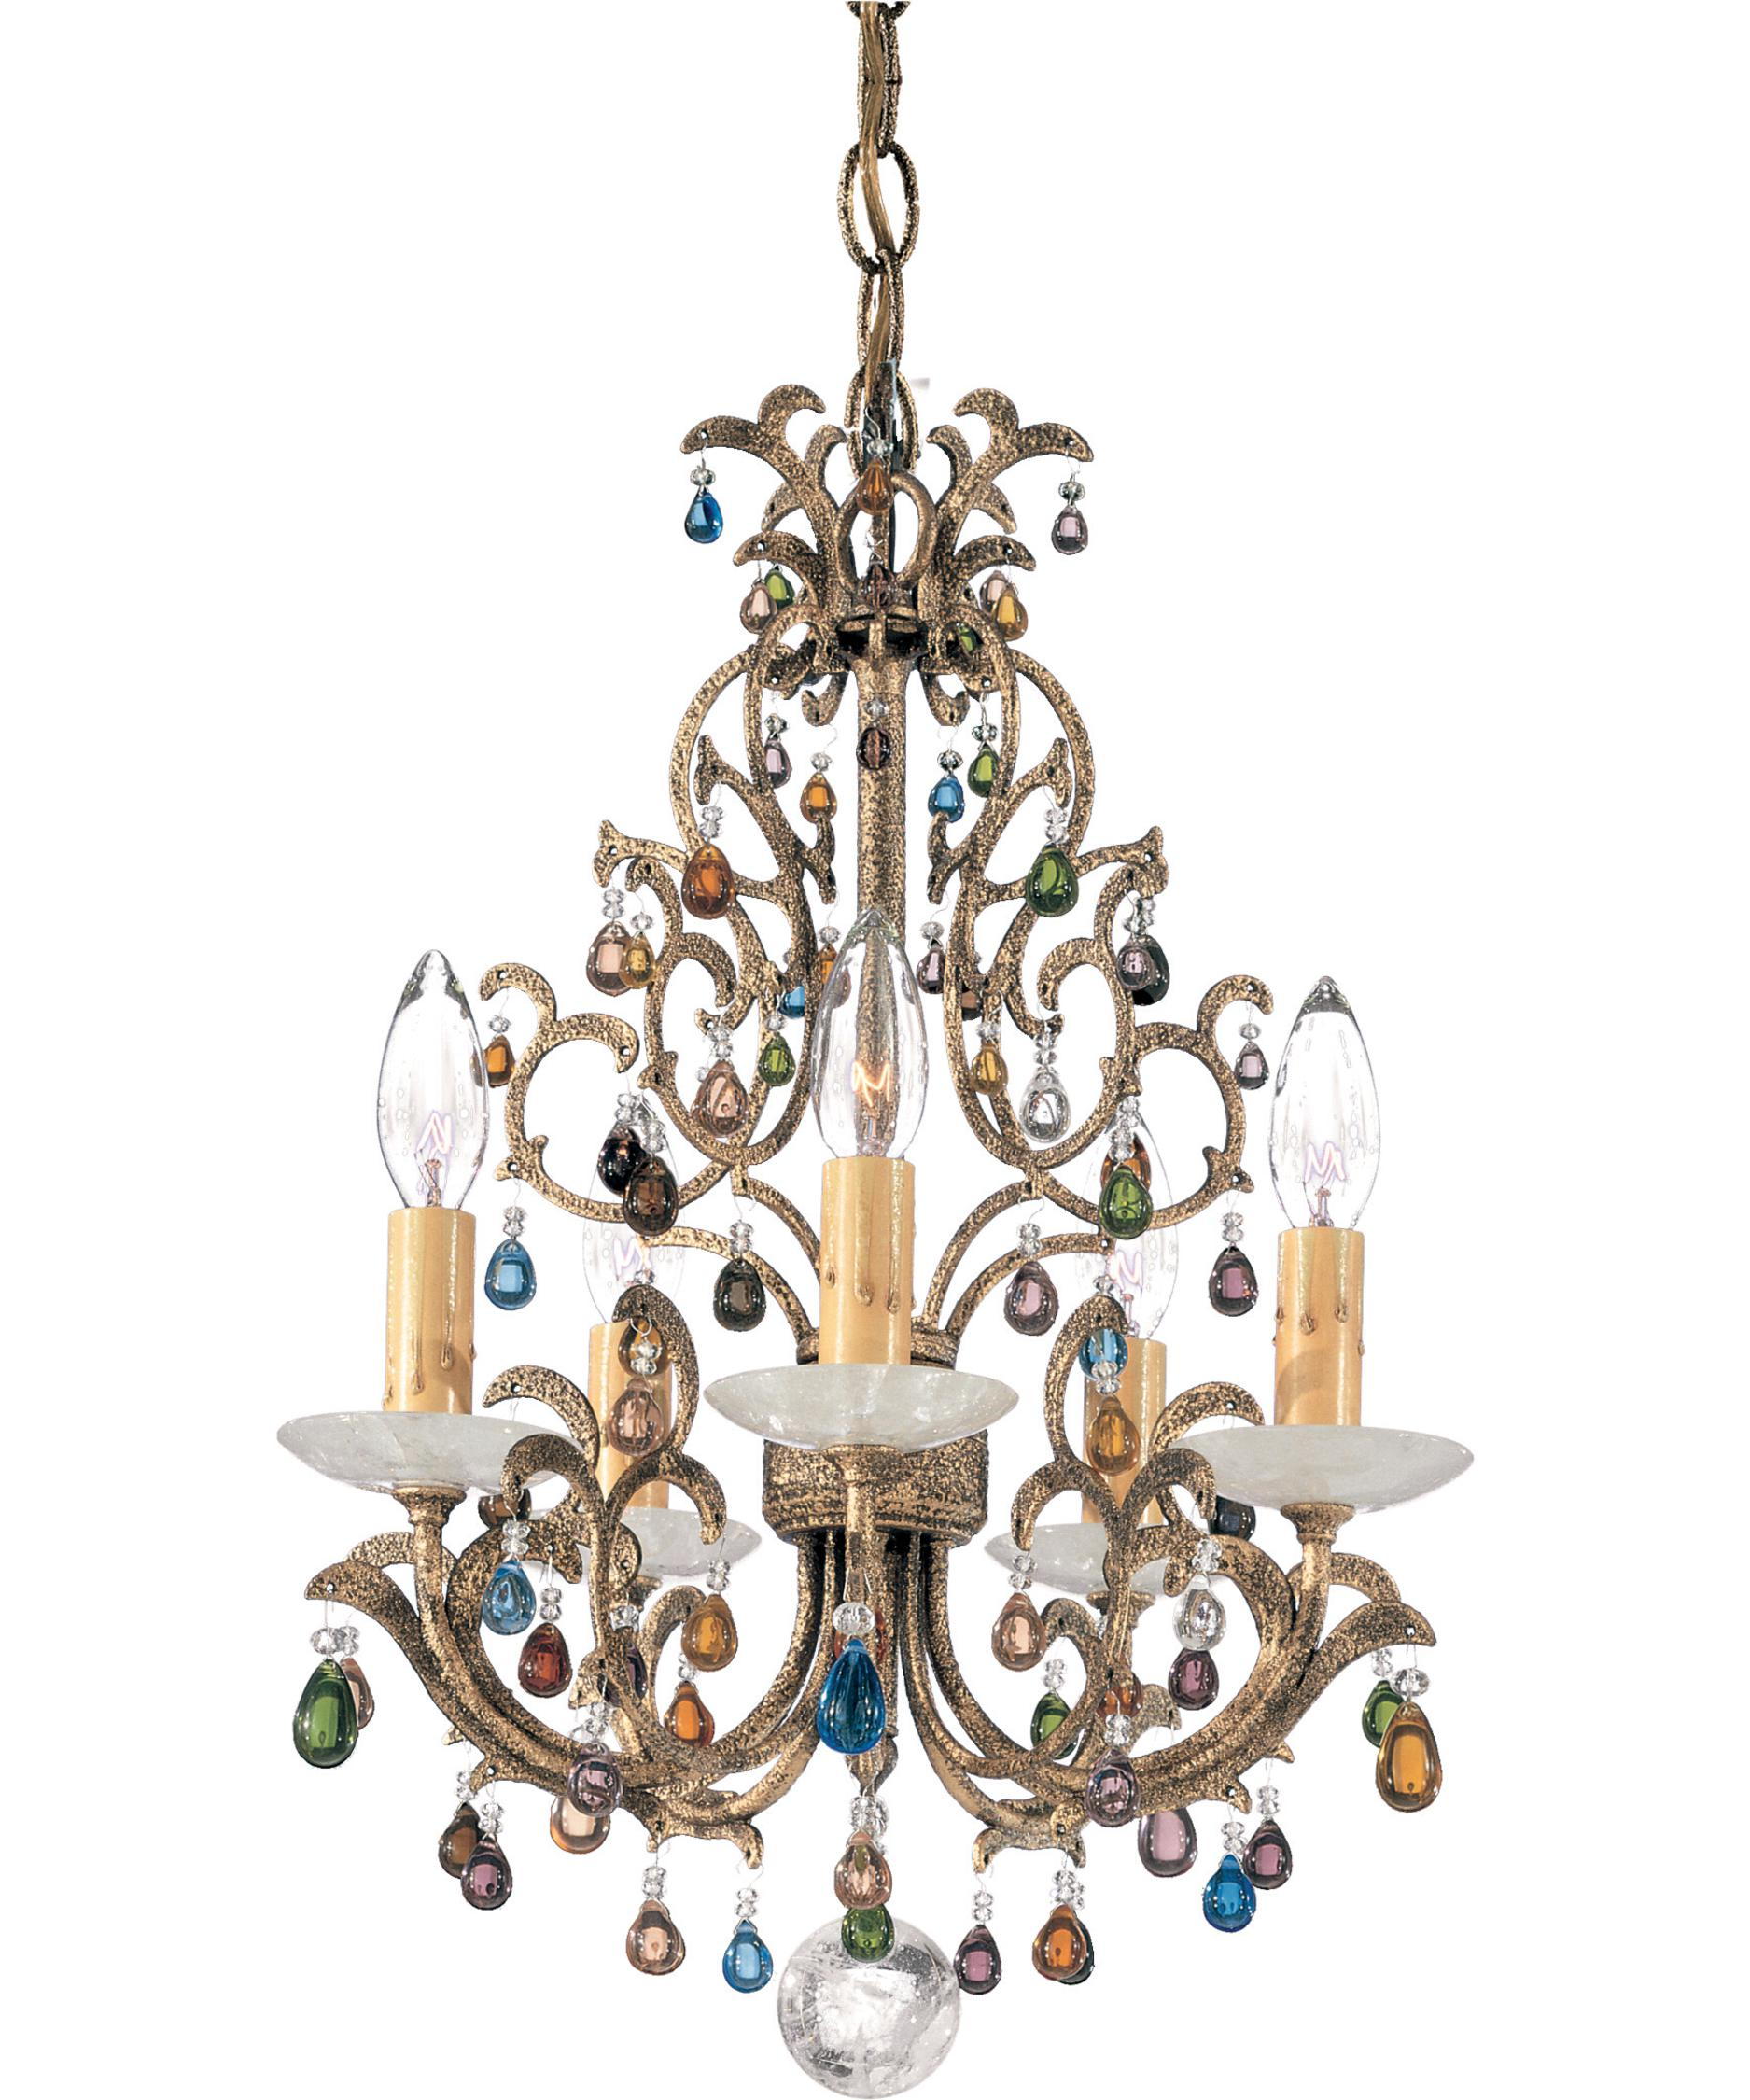 shown in bronze gold finish and jewel tones and rock crystal - Schonbek Lighting